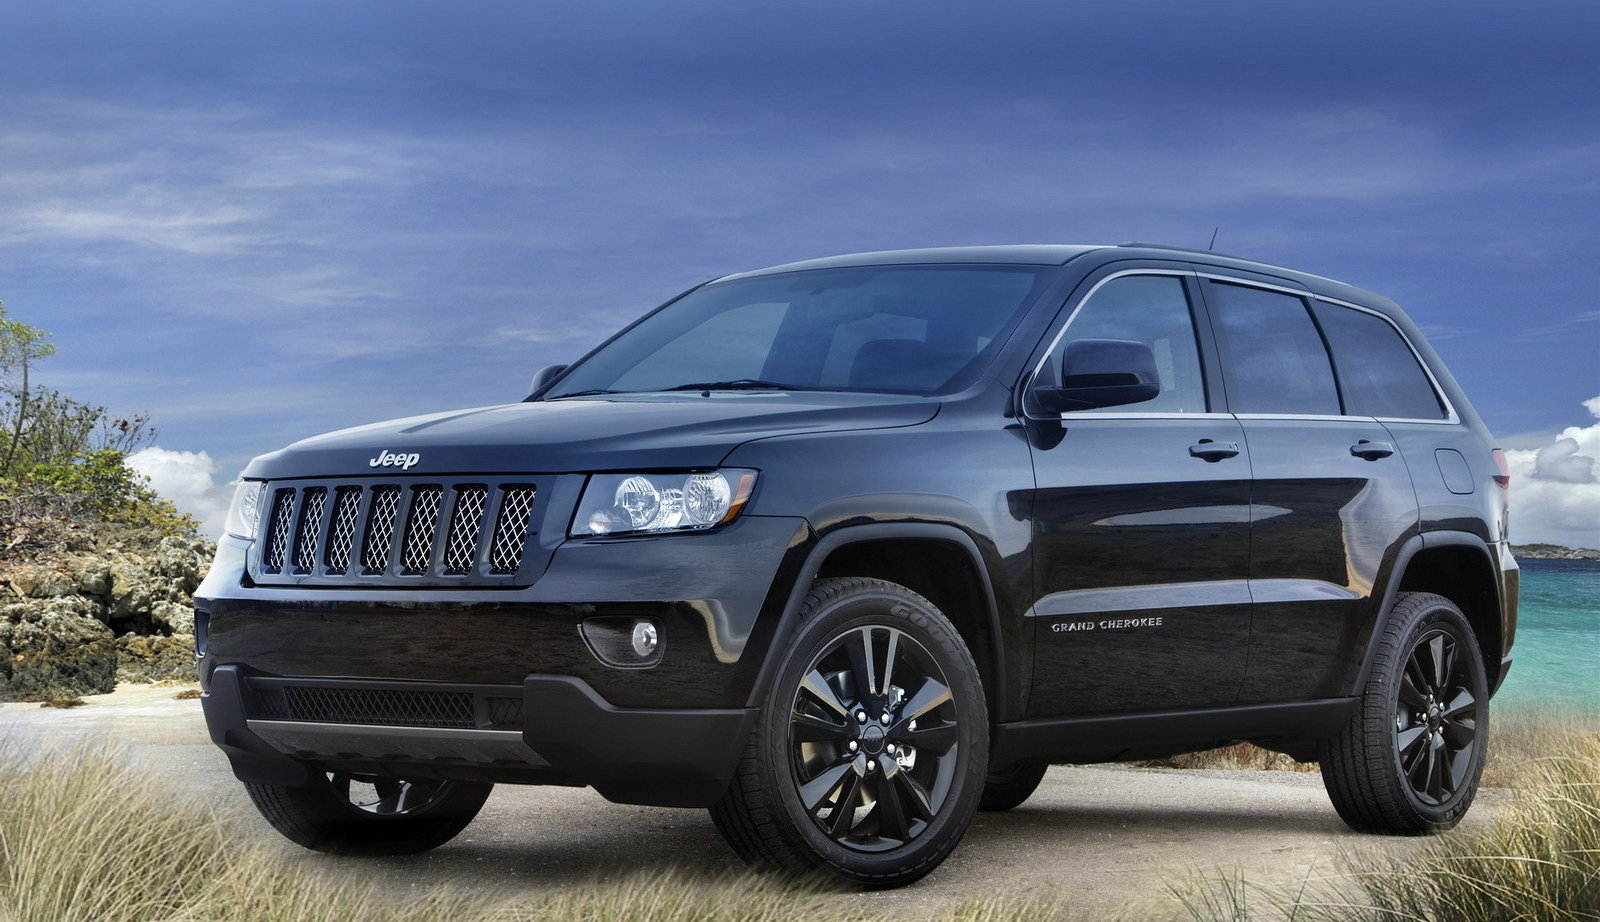 jeep grand cherokee reviews, specs & prices - page 6 - top speed